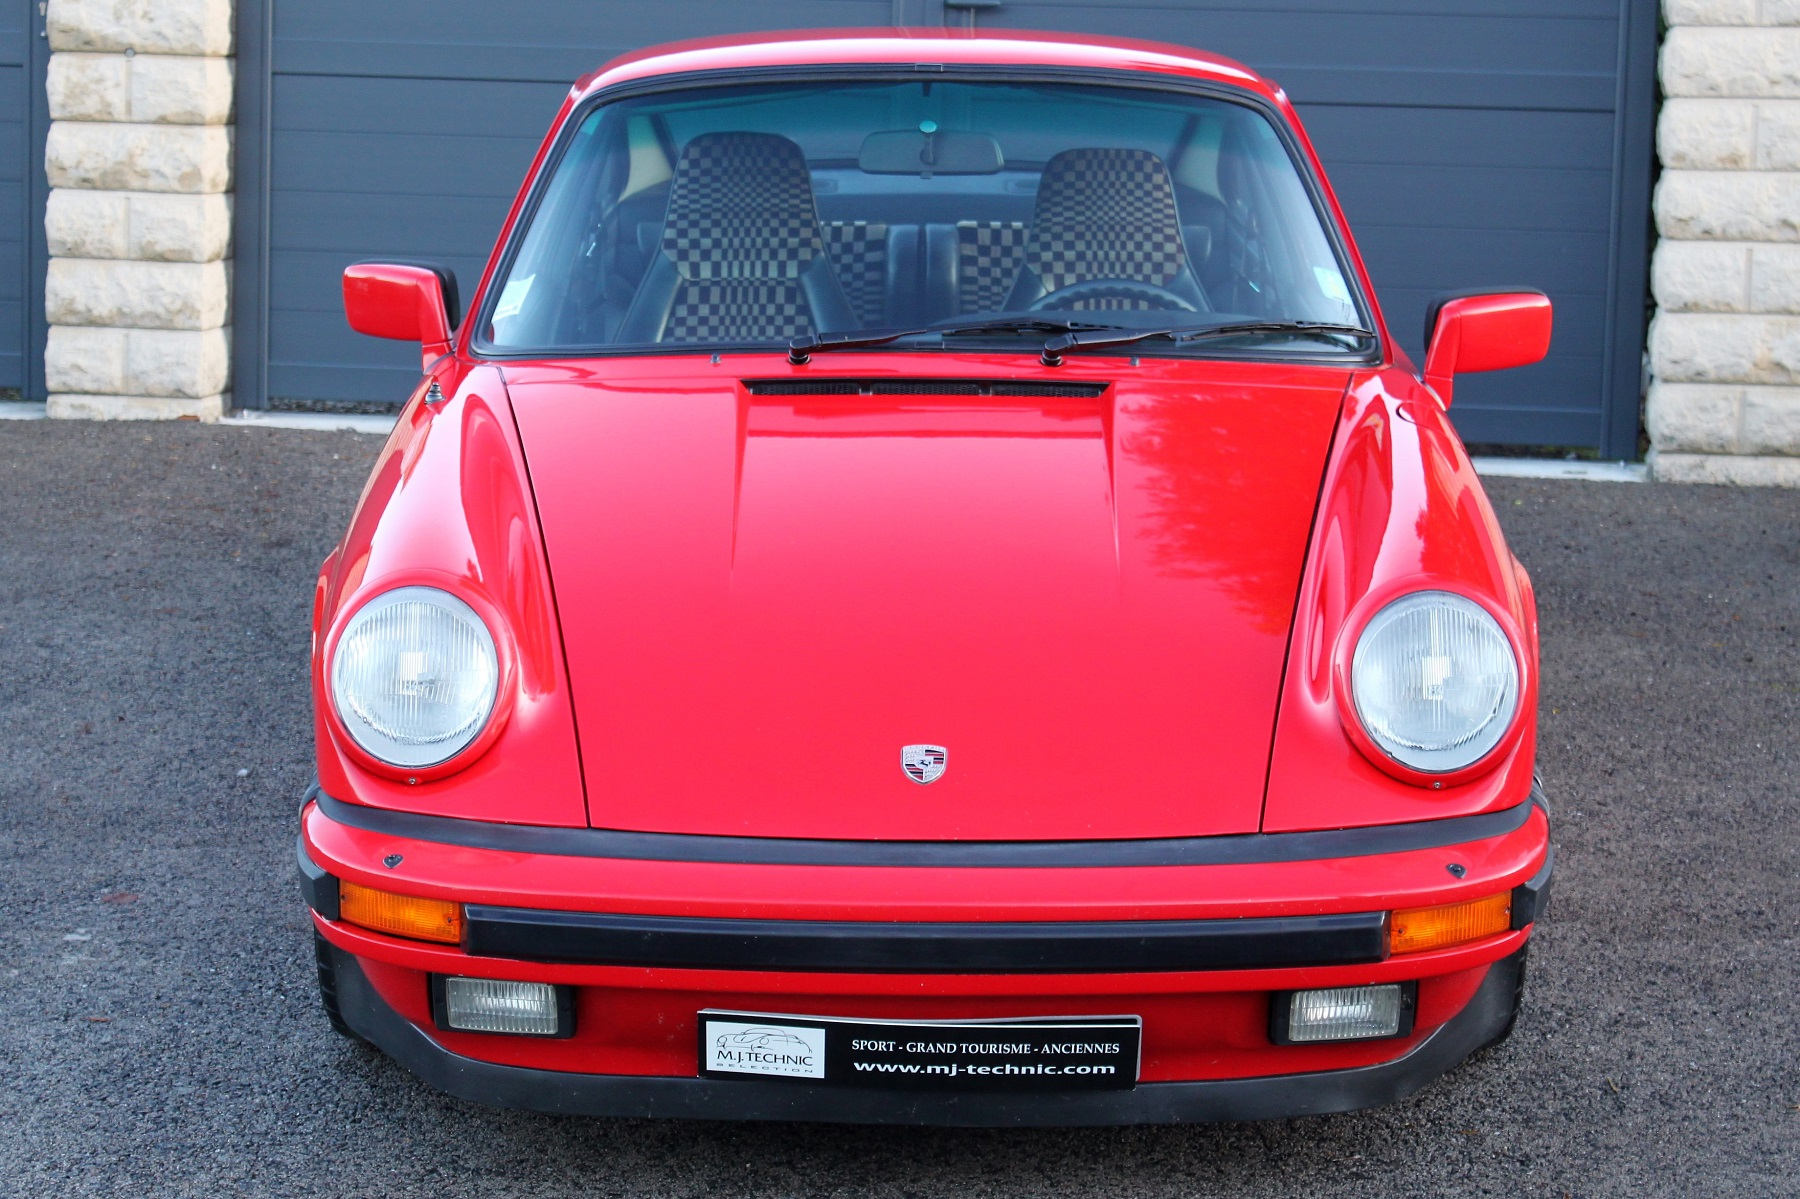 PORSCHE 911 3.2L 915 ROUGE INDIEN MJ TECHNIC (2)